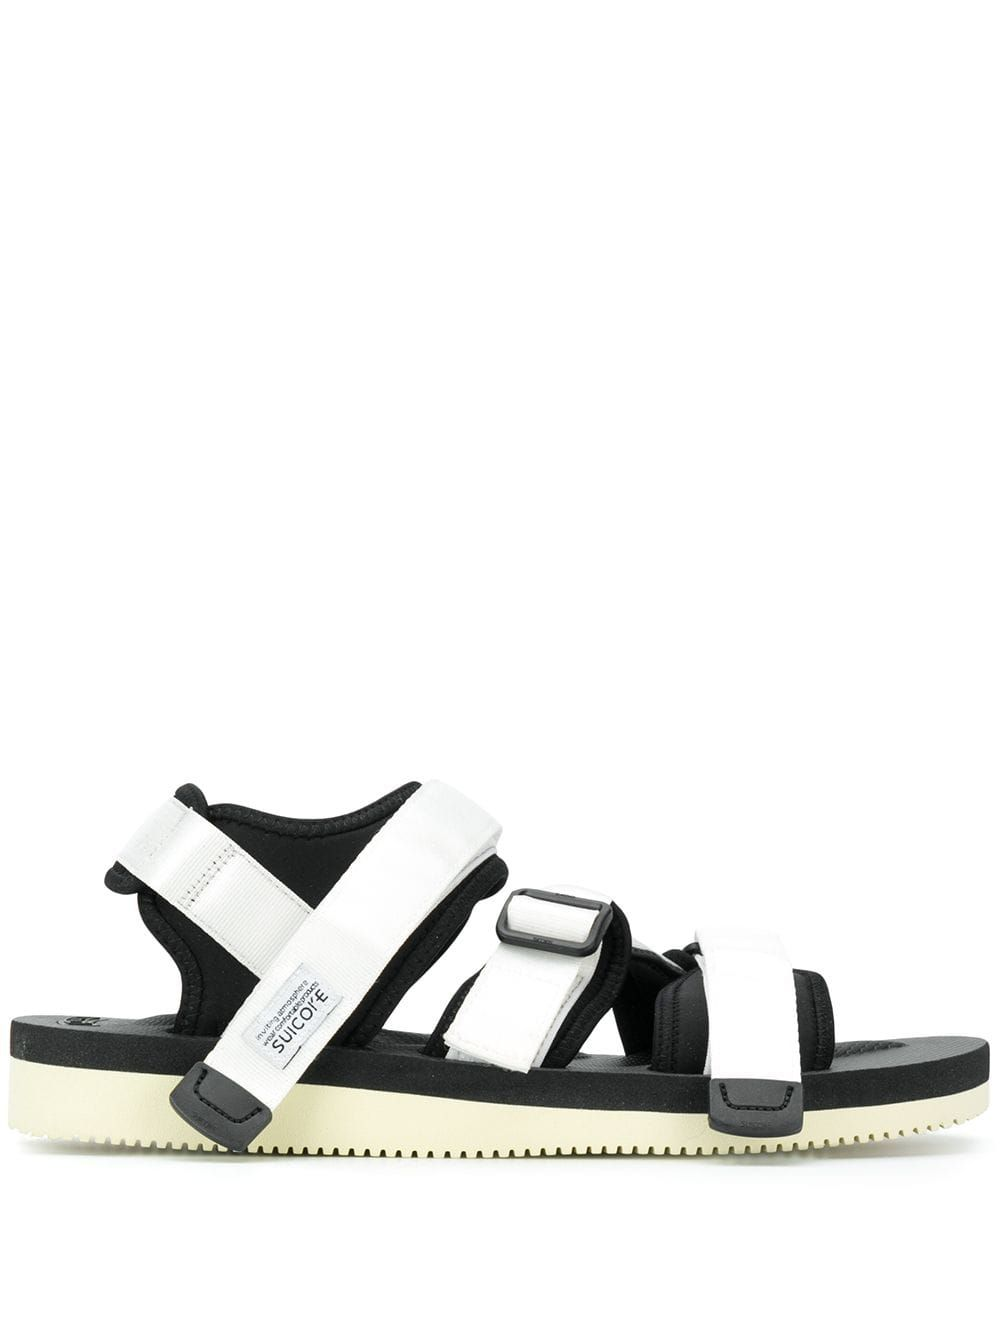 88bd88ed90b Suicoke touch strap sandals - White in 2019 | Products | Sandals ...